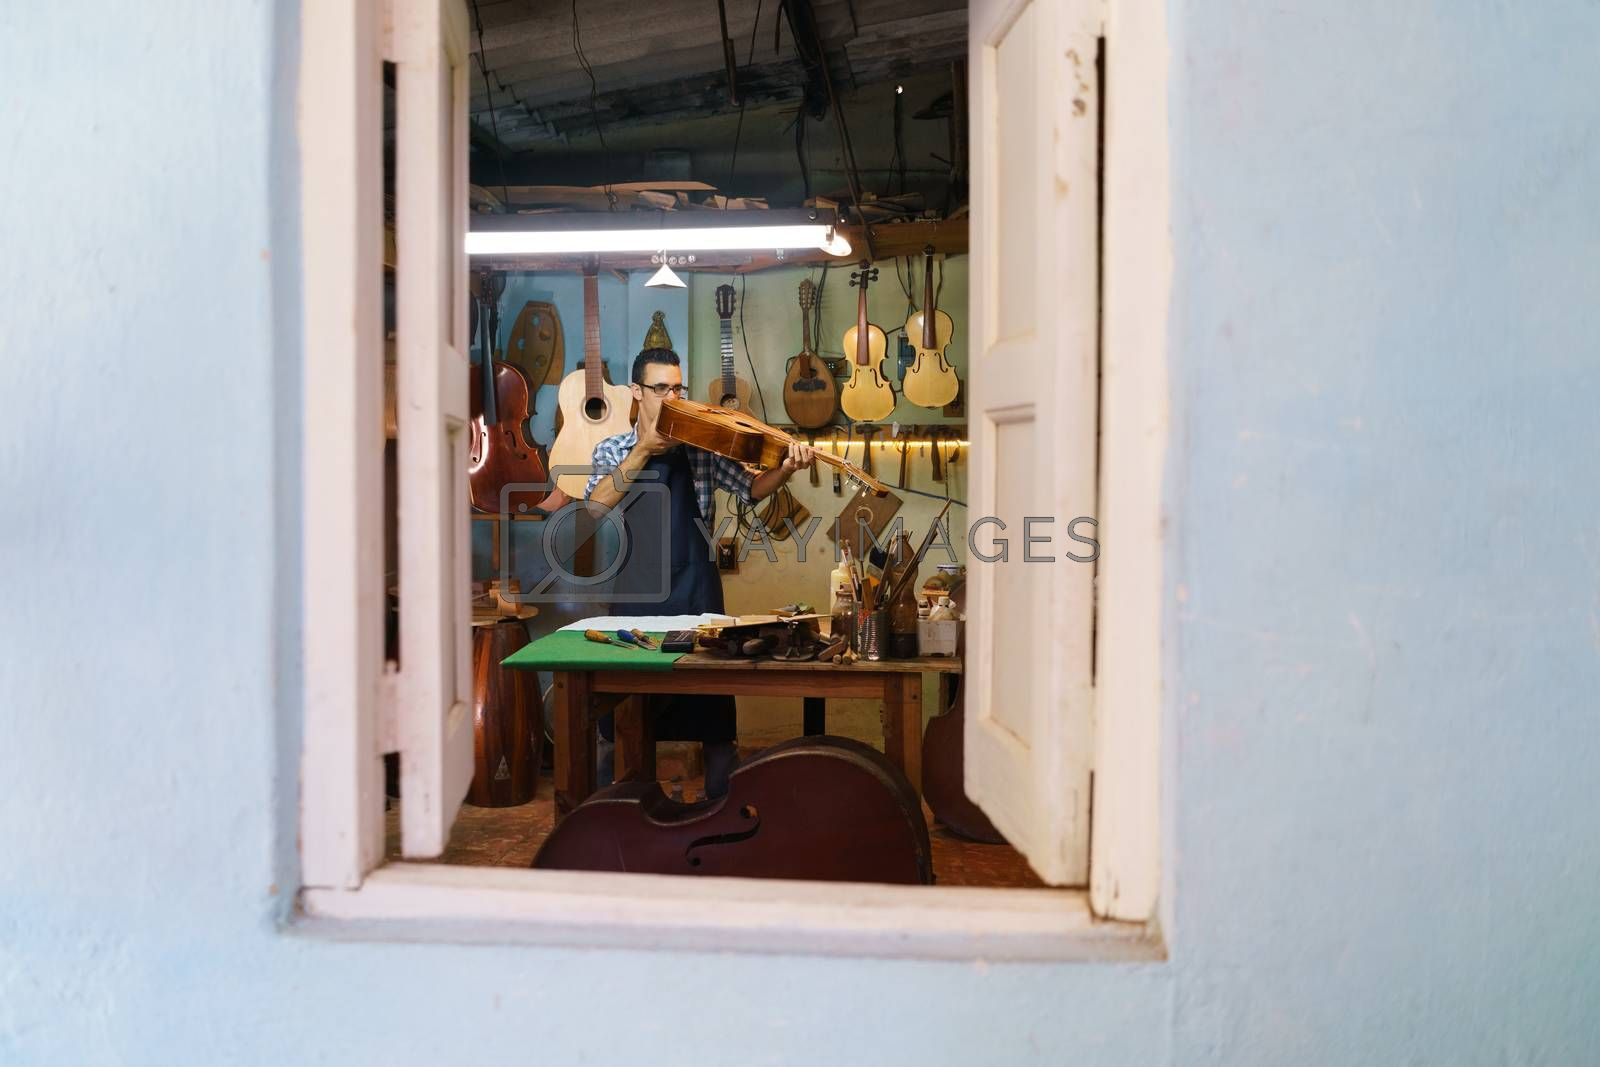 Lute maker shop and classic music instruments: young adult artisan fixing old classic guitar. The man looks carefully at bridge and arm to check the wood curvature. Full length